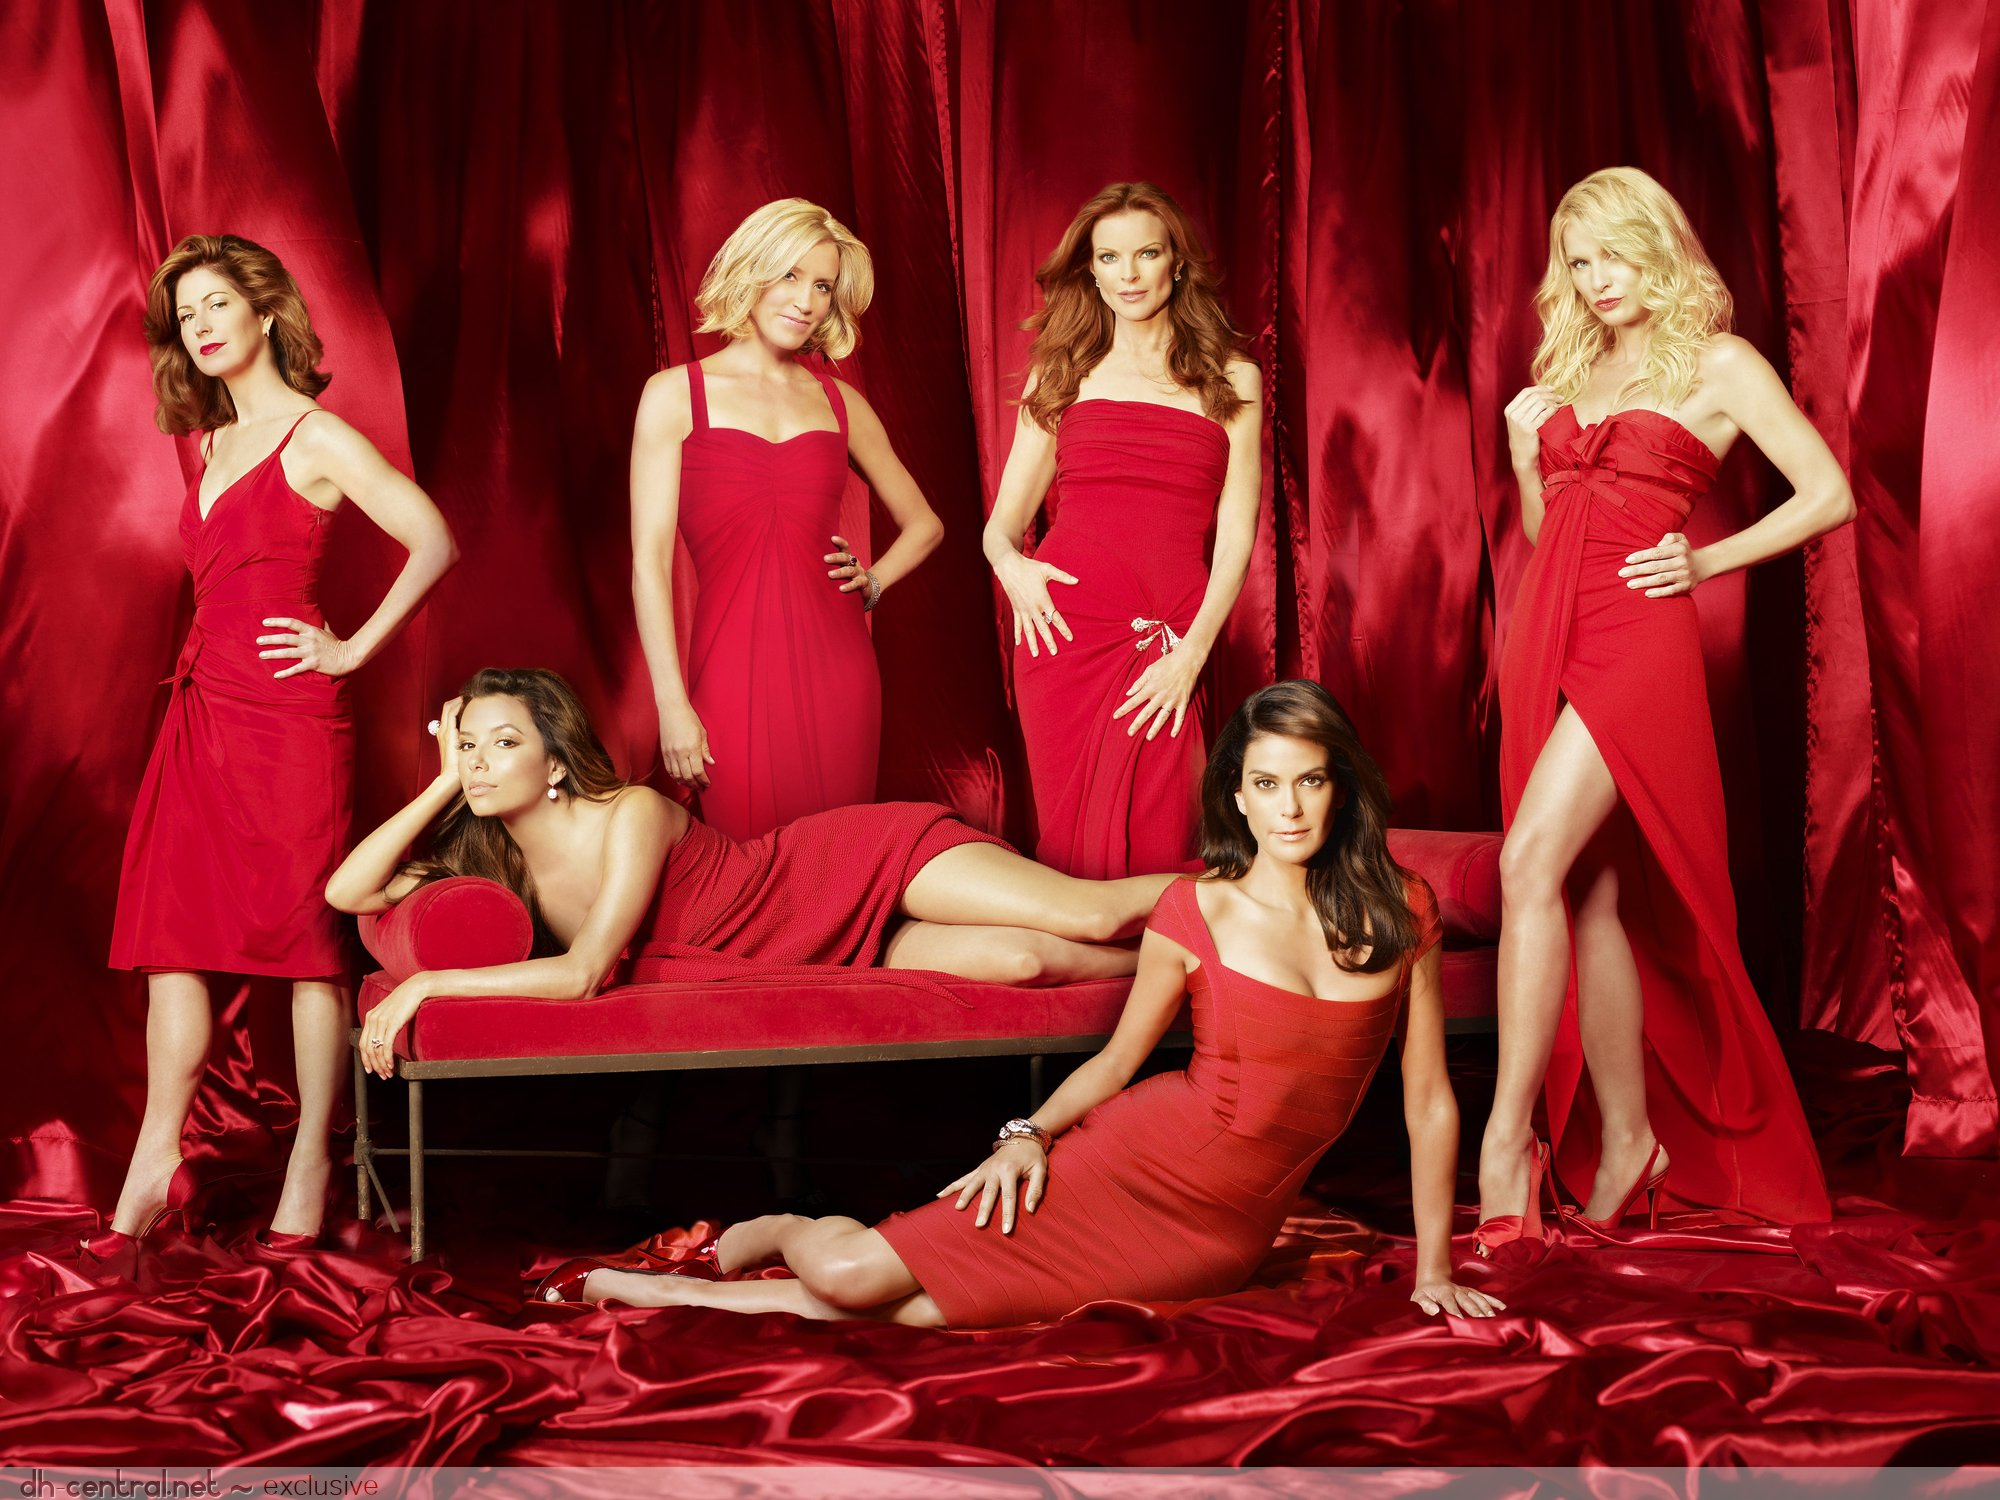 desperate housewives seasons 1 5 36 dvd 003 free adult dating north hampton ohio. User #62028.